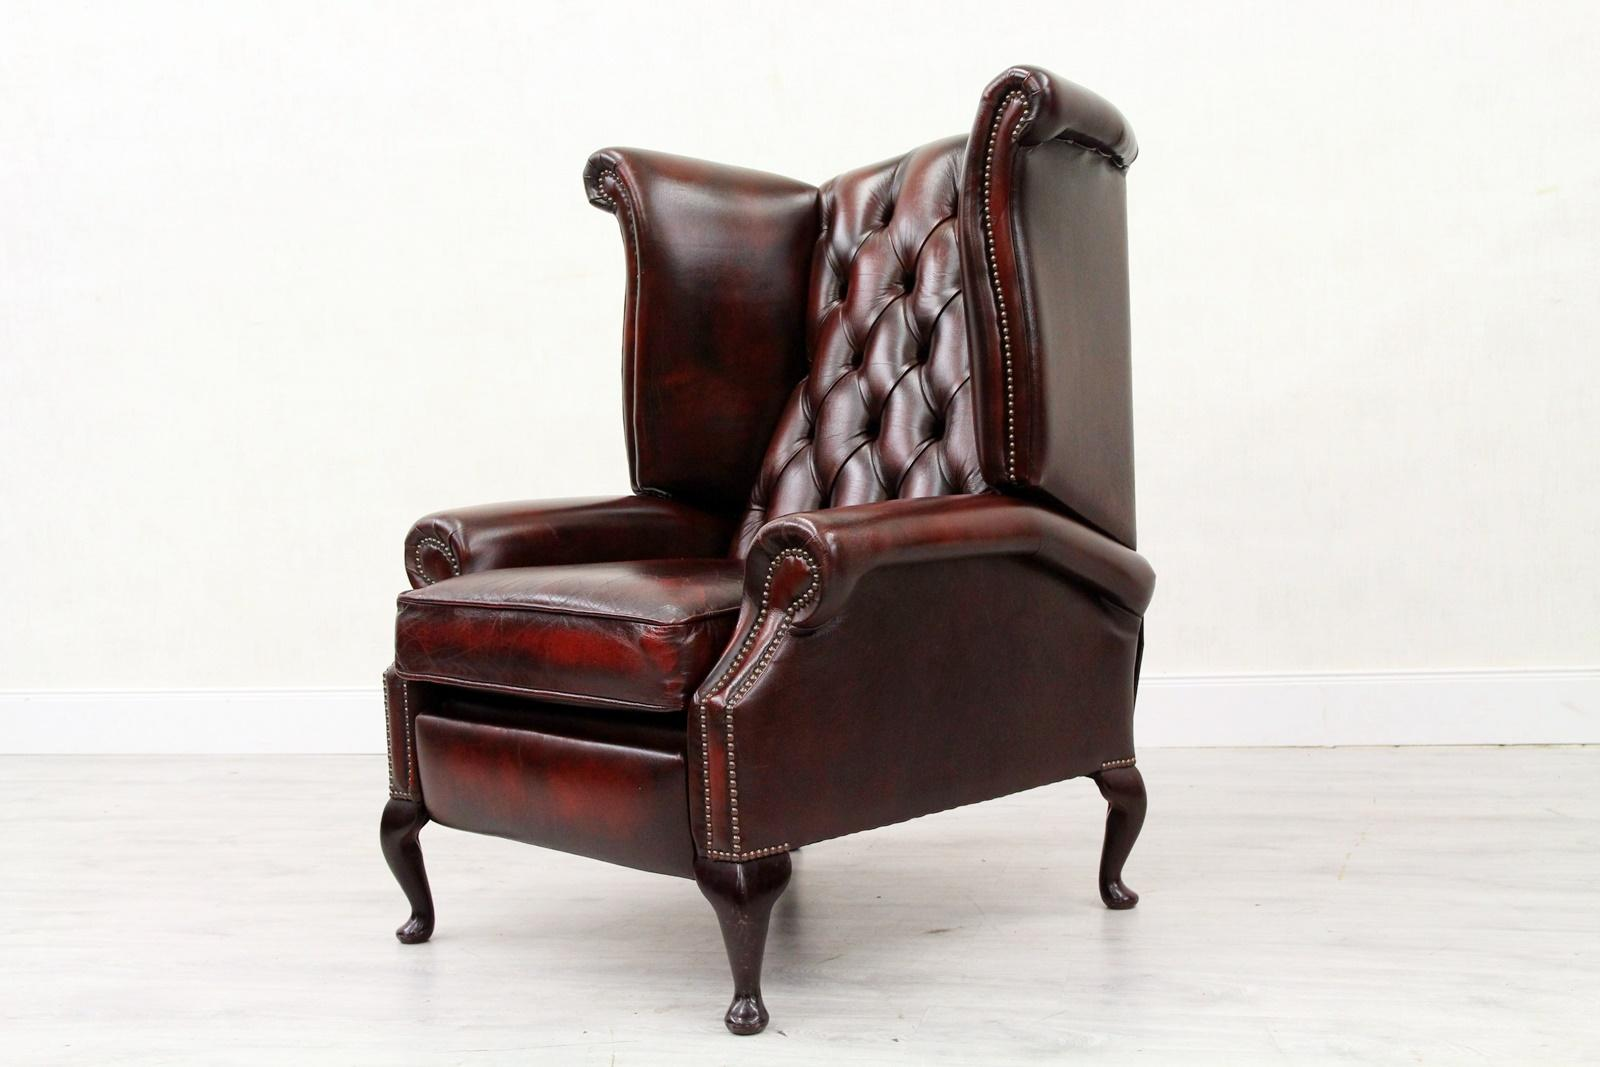 Chesterfield Sofa Armchair Leather Antique Wing Chair TV Armchair